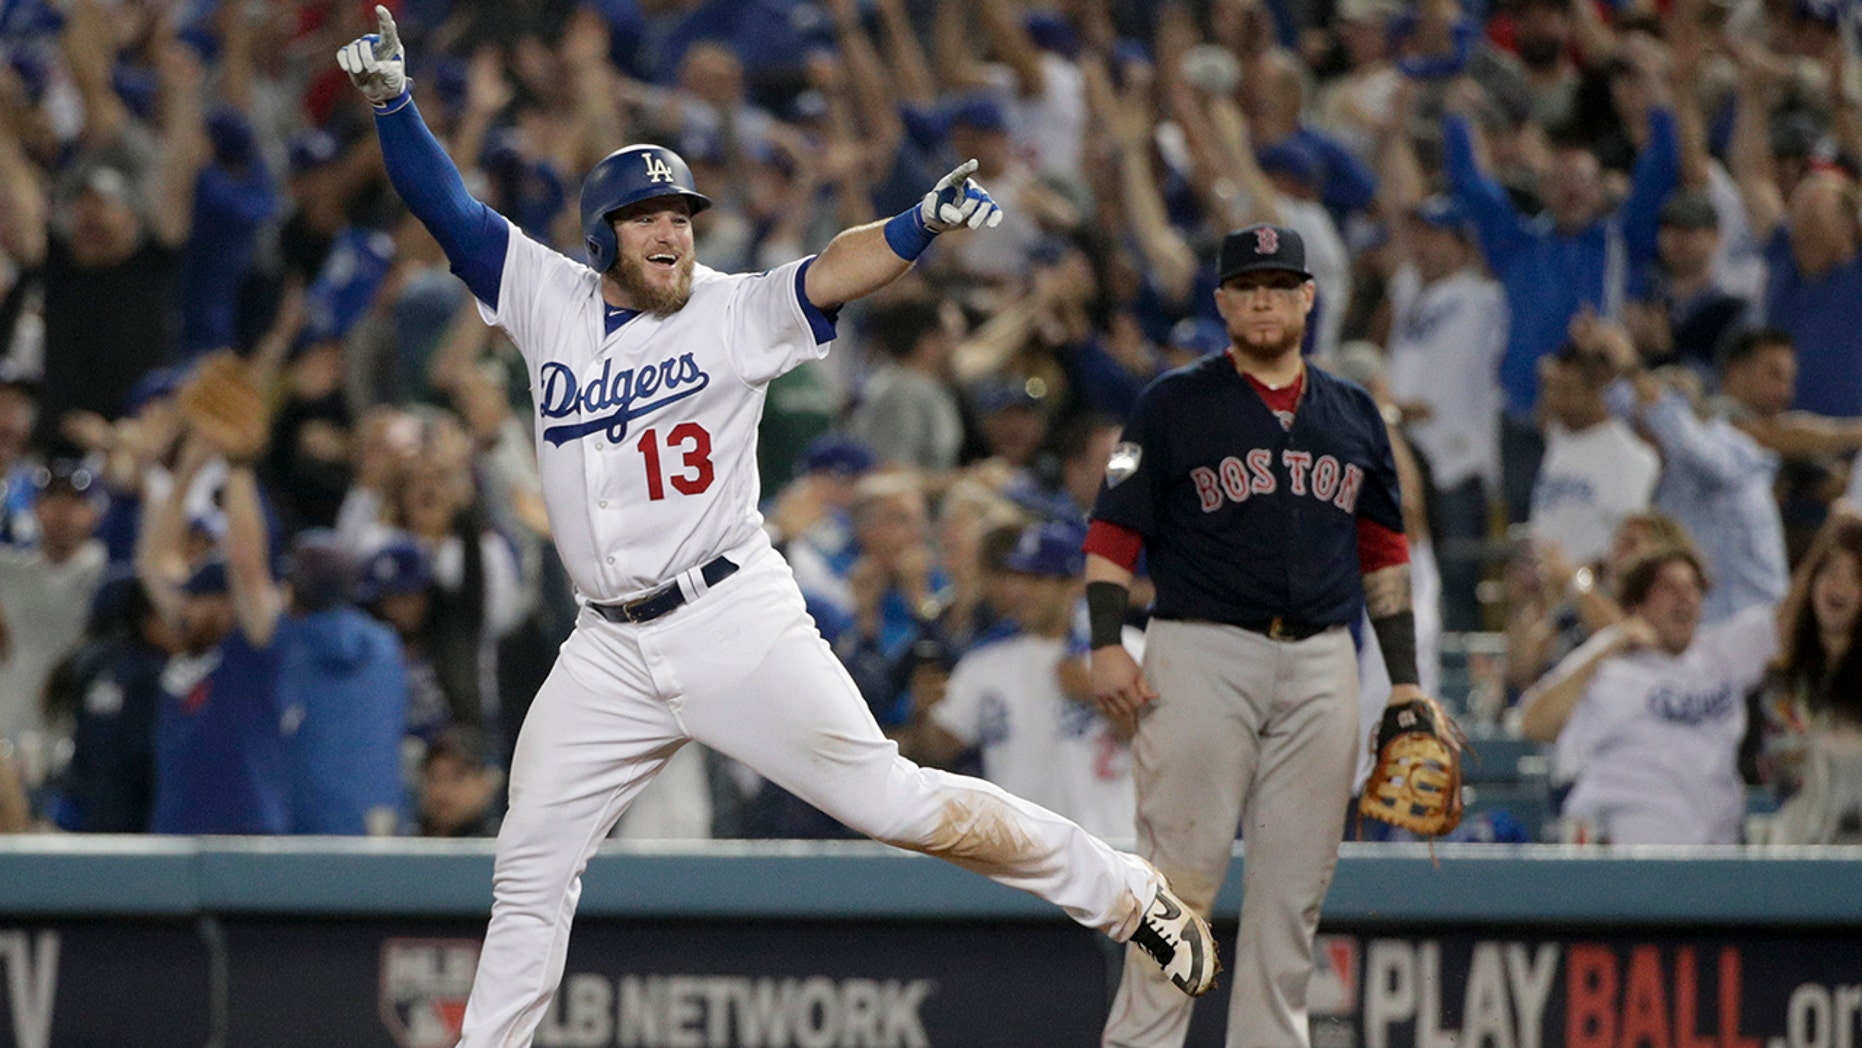 Los Angeles Dodgers' Max Muncy celebrates after his walk-off home run against the Boston Red Sox in the 18th inning of Game 3 of the World Series, on Saturday, Oct. 27, 2018, in Los Angeles. (Associated Press)  Dodgers top Red Sox, 3-2, in marathon 18-inning Game 3 of World Series muncy prancing clebrating game 3 ws win